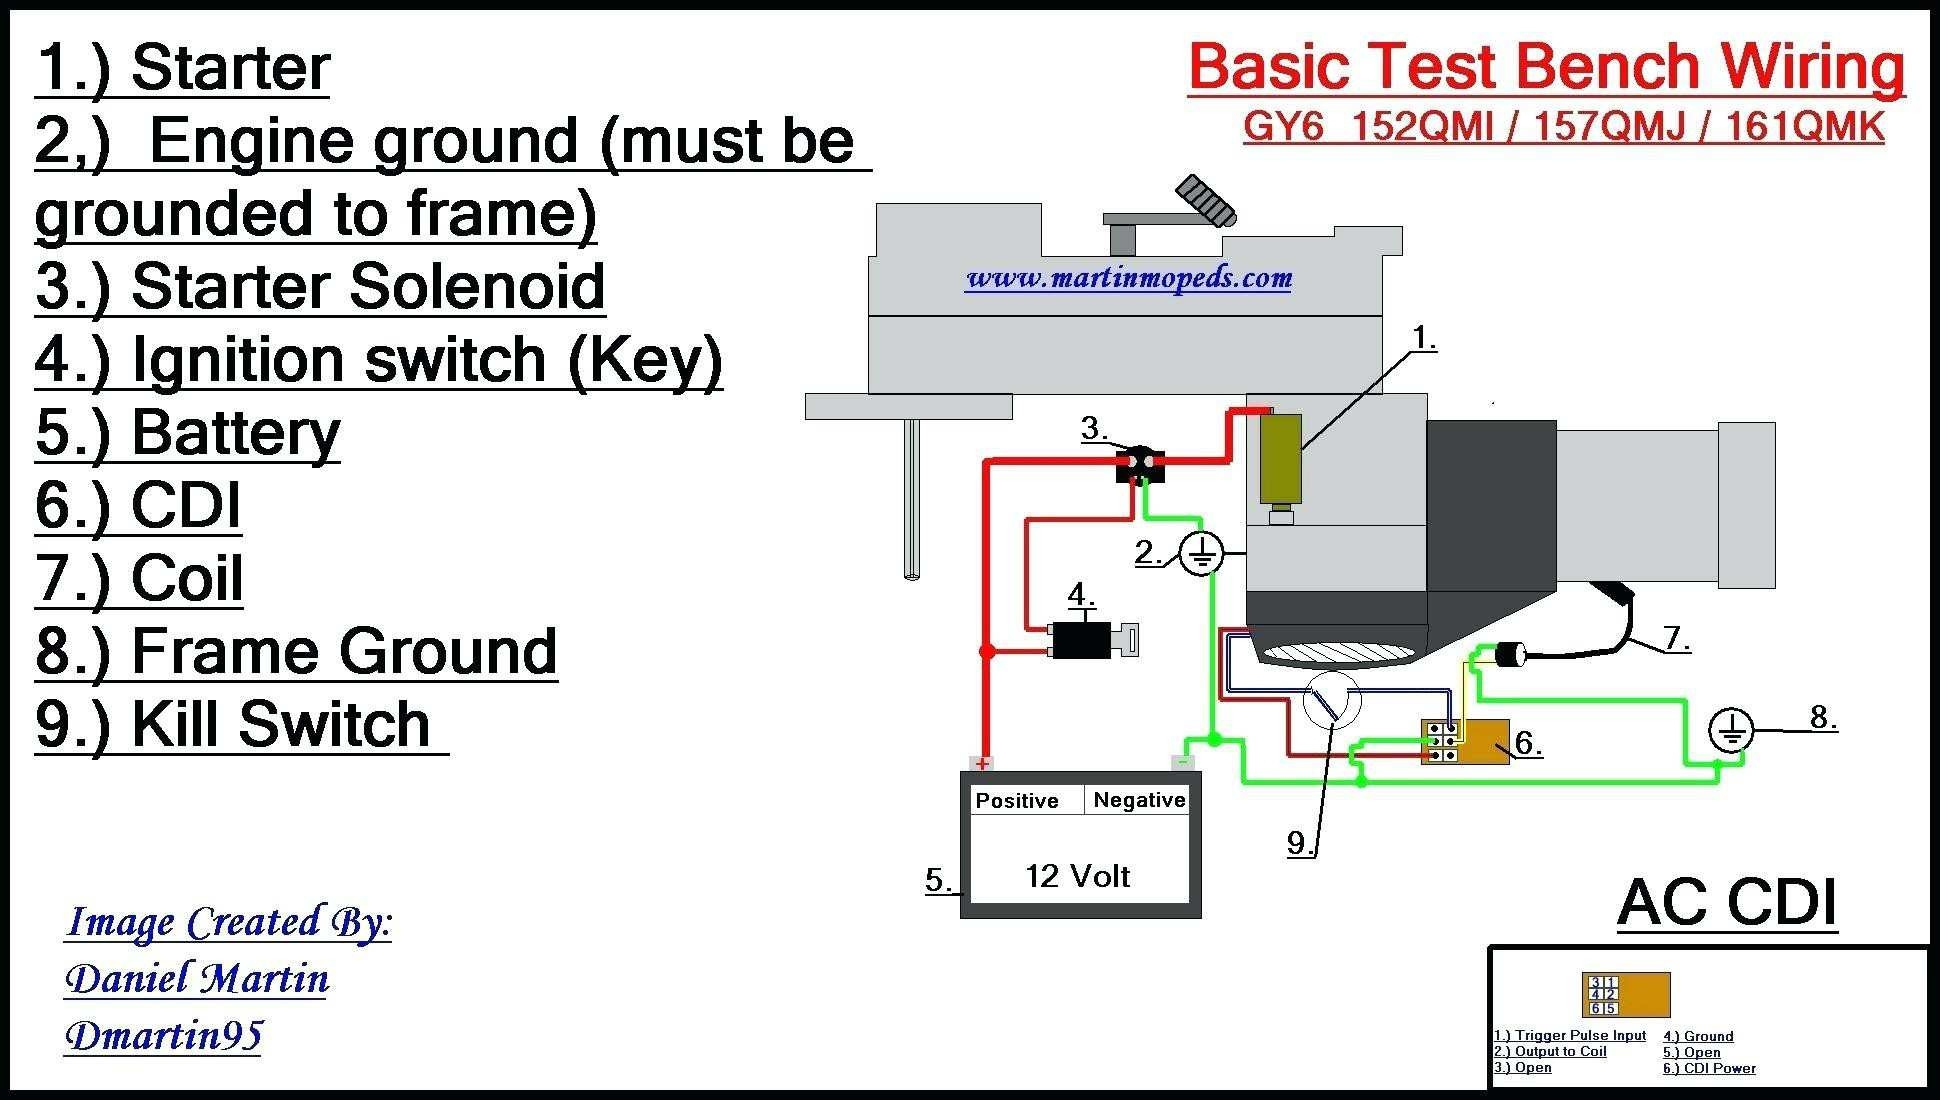 12 volt solenoid wiring diagram - wiring diagram for phase failure relay  new starter relay wiring